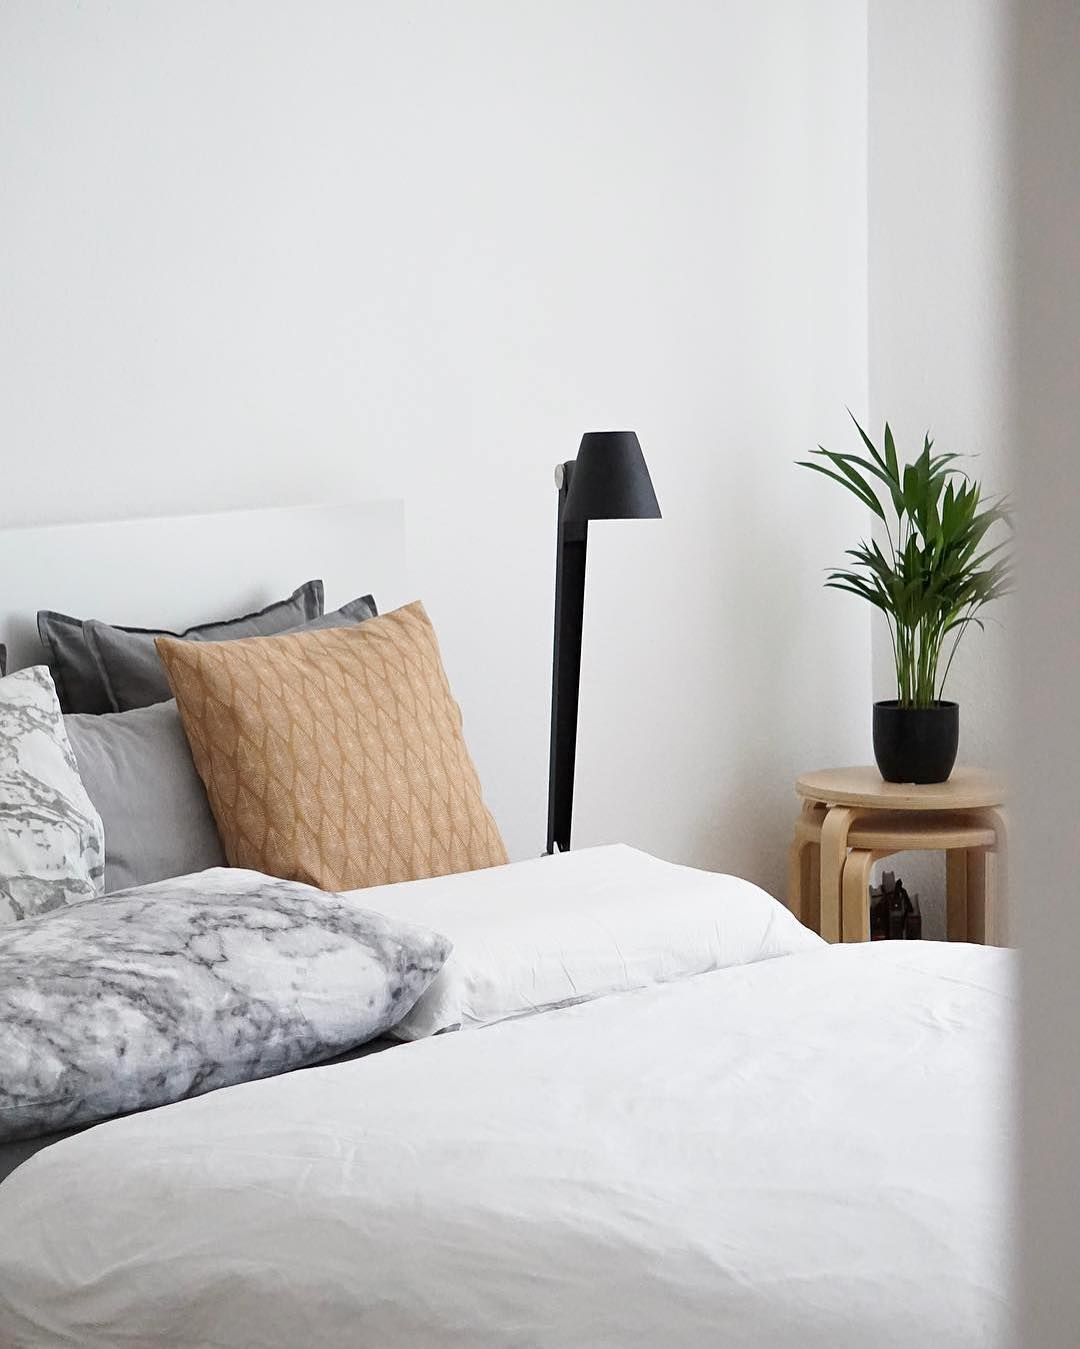 Master bedroom lighting  The Nordlux Cult table lamp standing tall in this cosy master